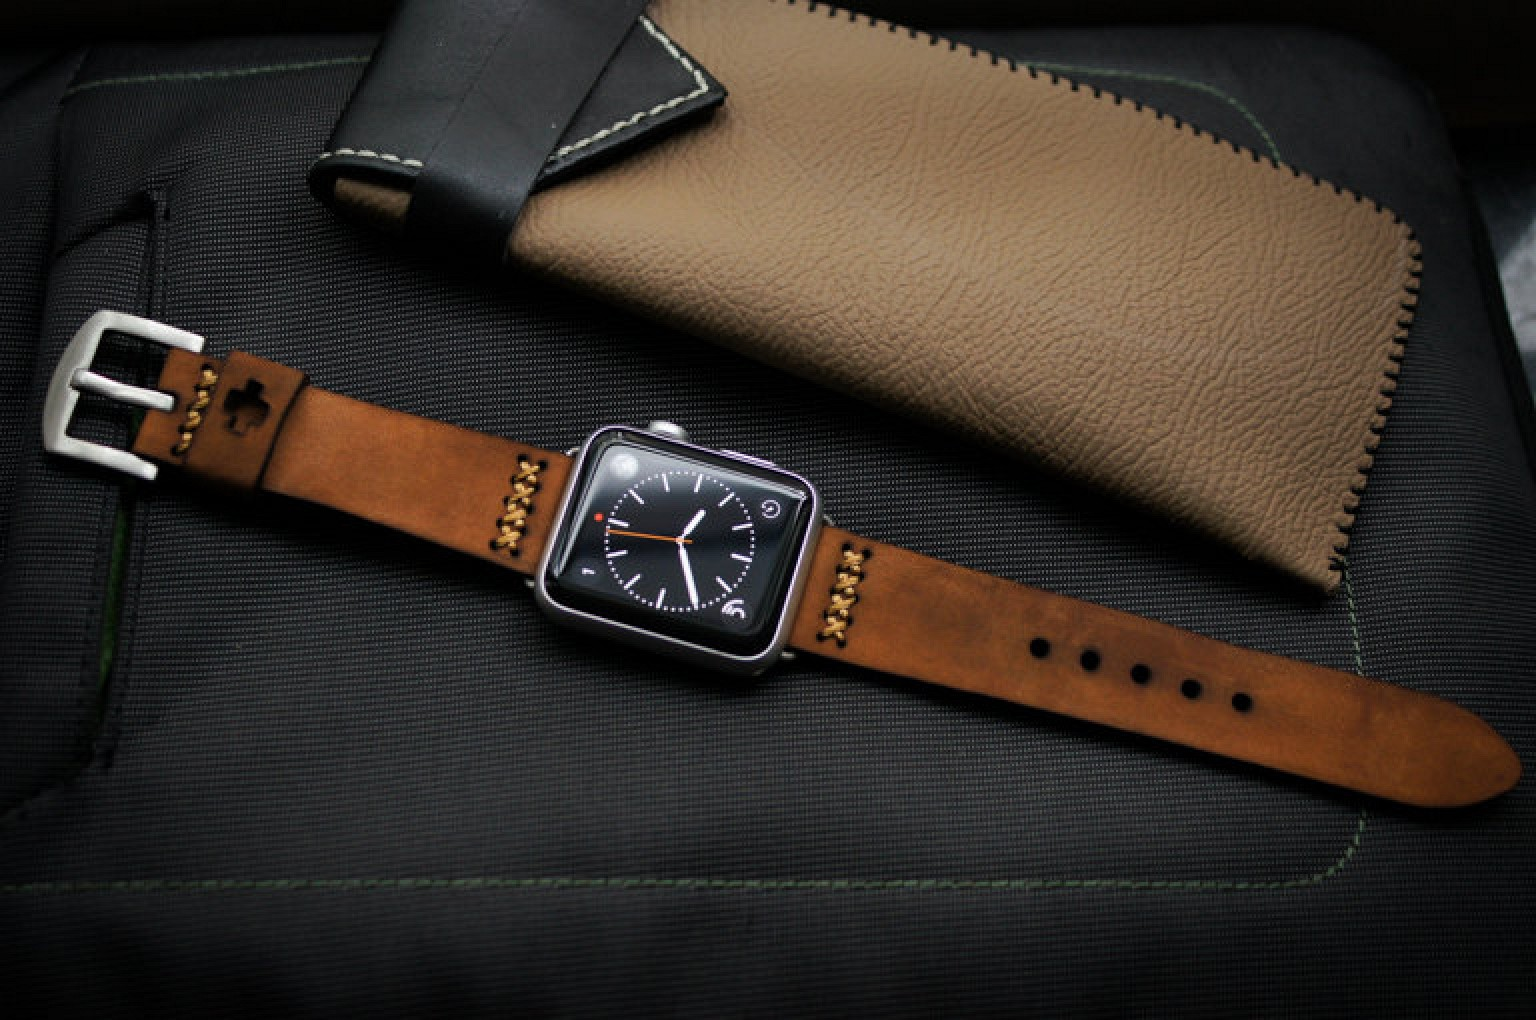 A Look At Third Party Bands For Apple Watch Macrumors